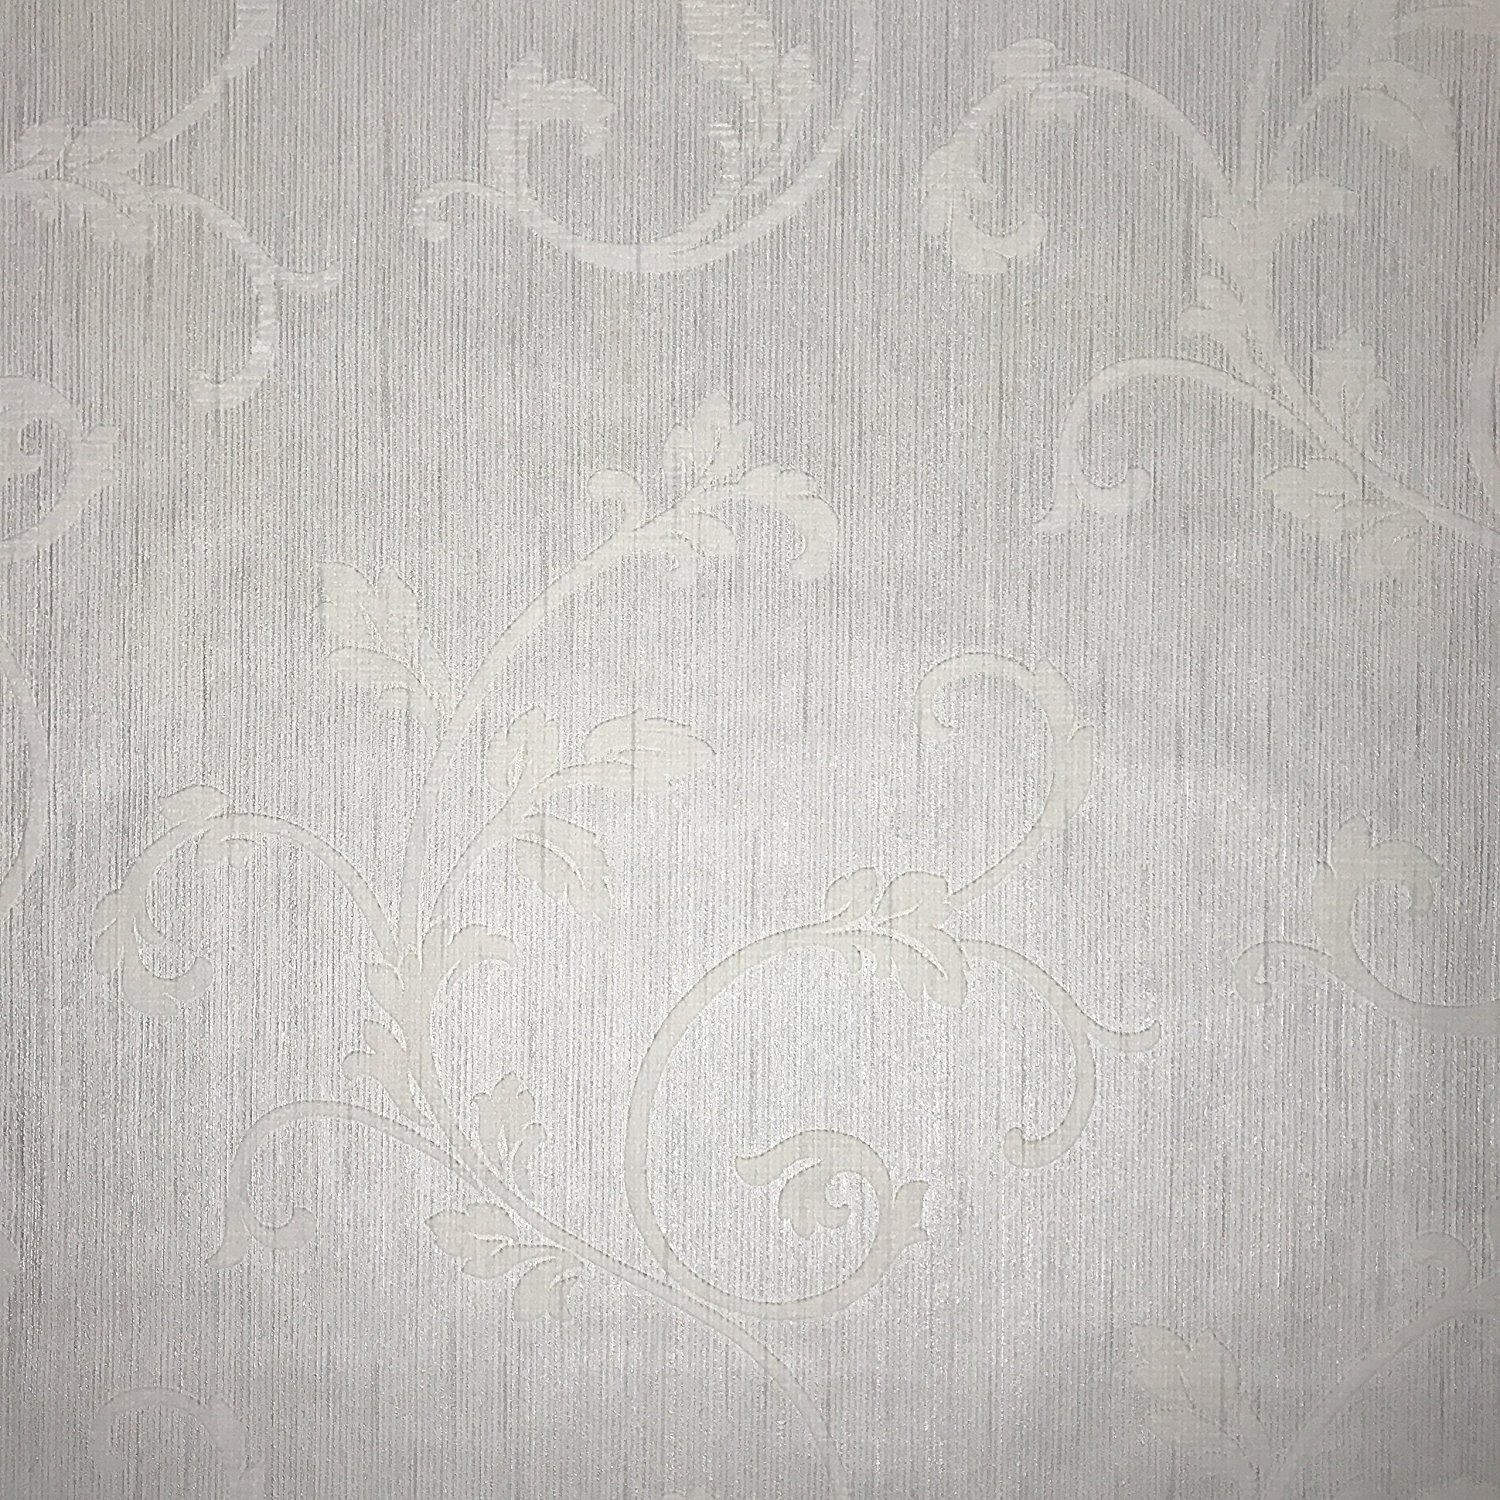 Get Quotations · 76 sq.ft Made in Italy Portofino wallcoverings modern  embossed flocked Vinyl Non-Woven 6460ae6e000c